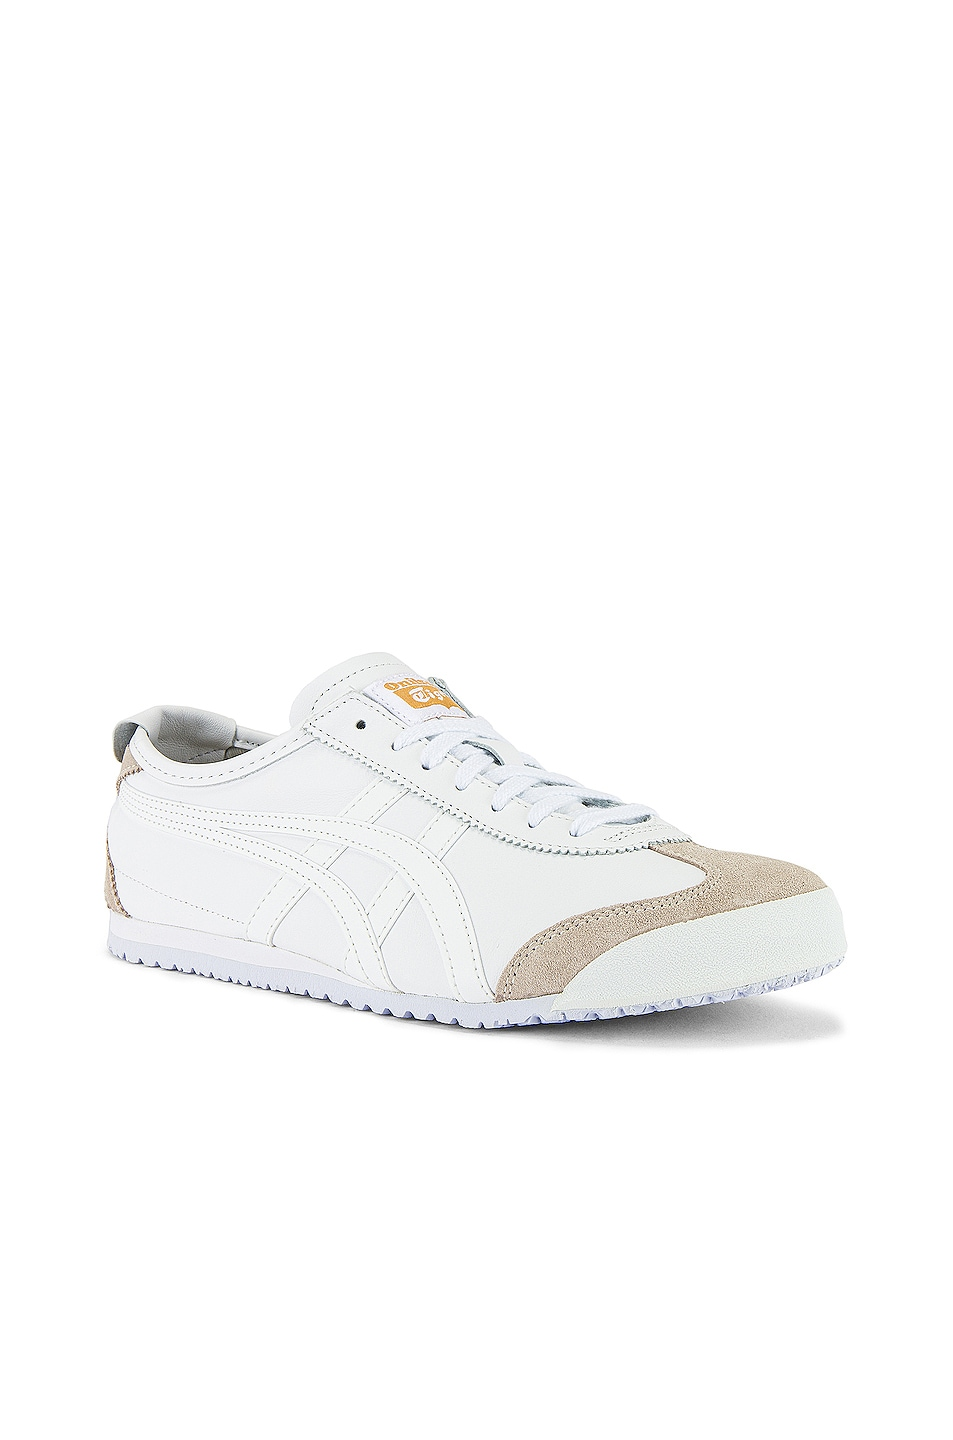 Image 2 of Onitsuka Tiger Mexico 66 in White White